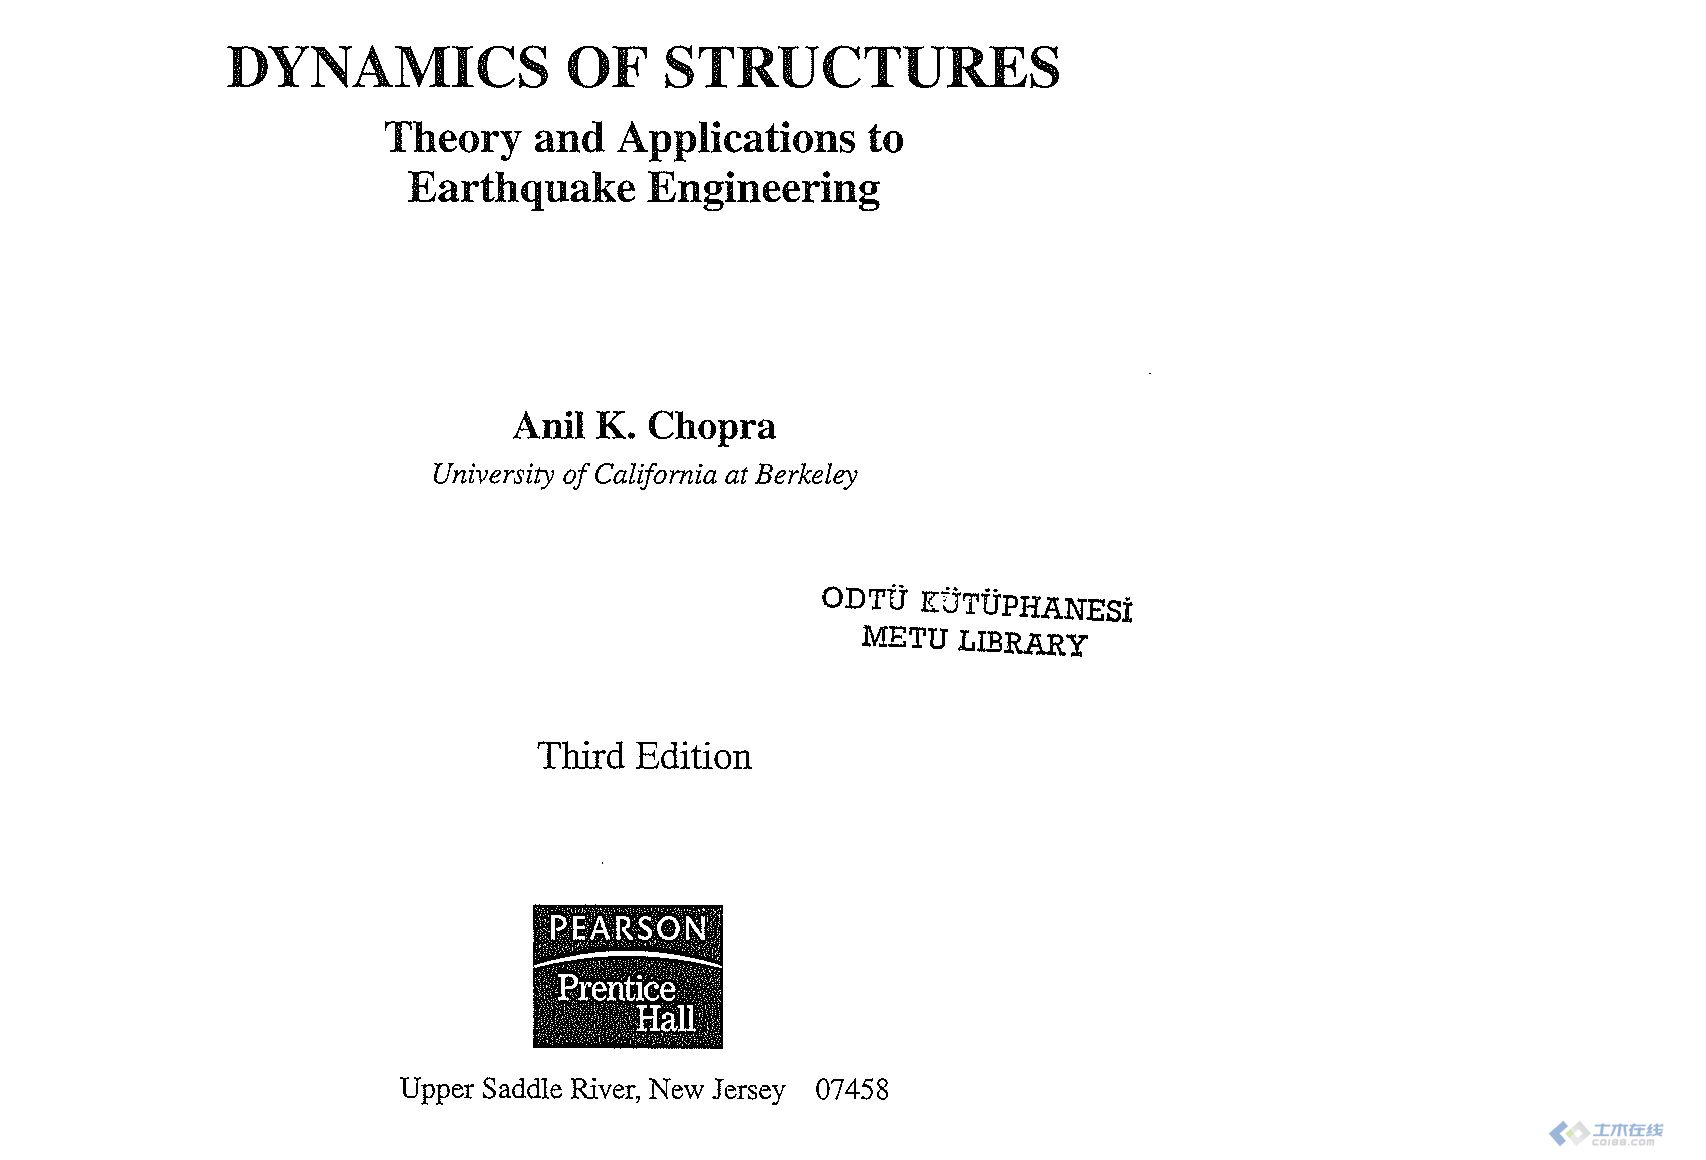 Dynamics of Structures Theory and Applications to Earthquake Engineering, 3rd Edition.jpg